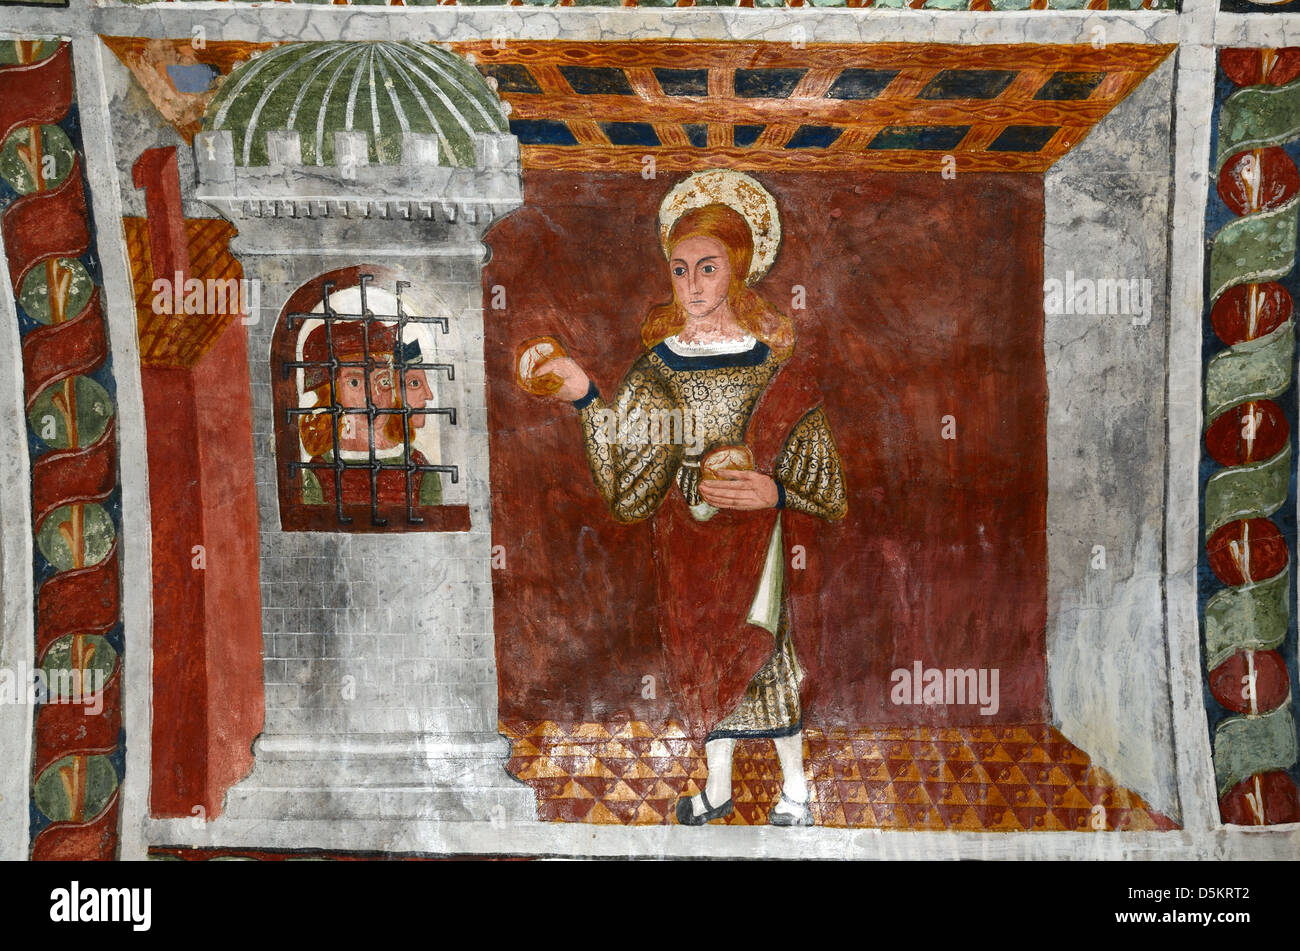 Fresco Saint Sebastian Bringing Bread to Imprisoned Christians (1513) Chapel of Saint Sebastian Roubion Alpes-Maritimes - Stock Image